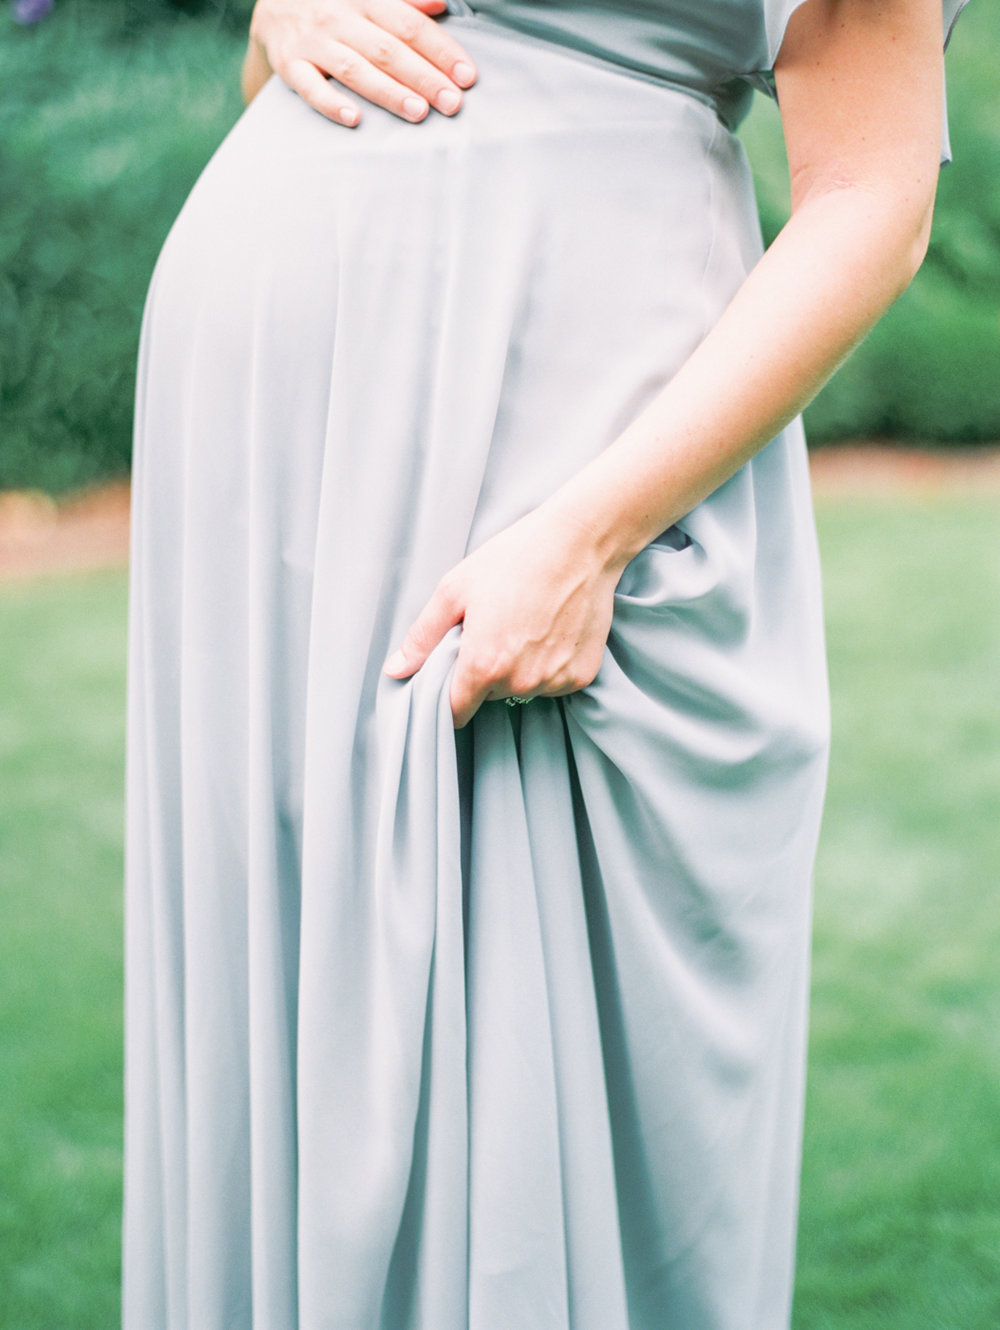 shackleford maternity four corners photography athens maternity photographer anna shackleford photography atlanta film photographer maternity photography-10.jpg